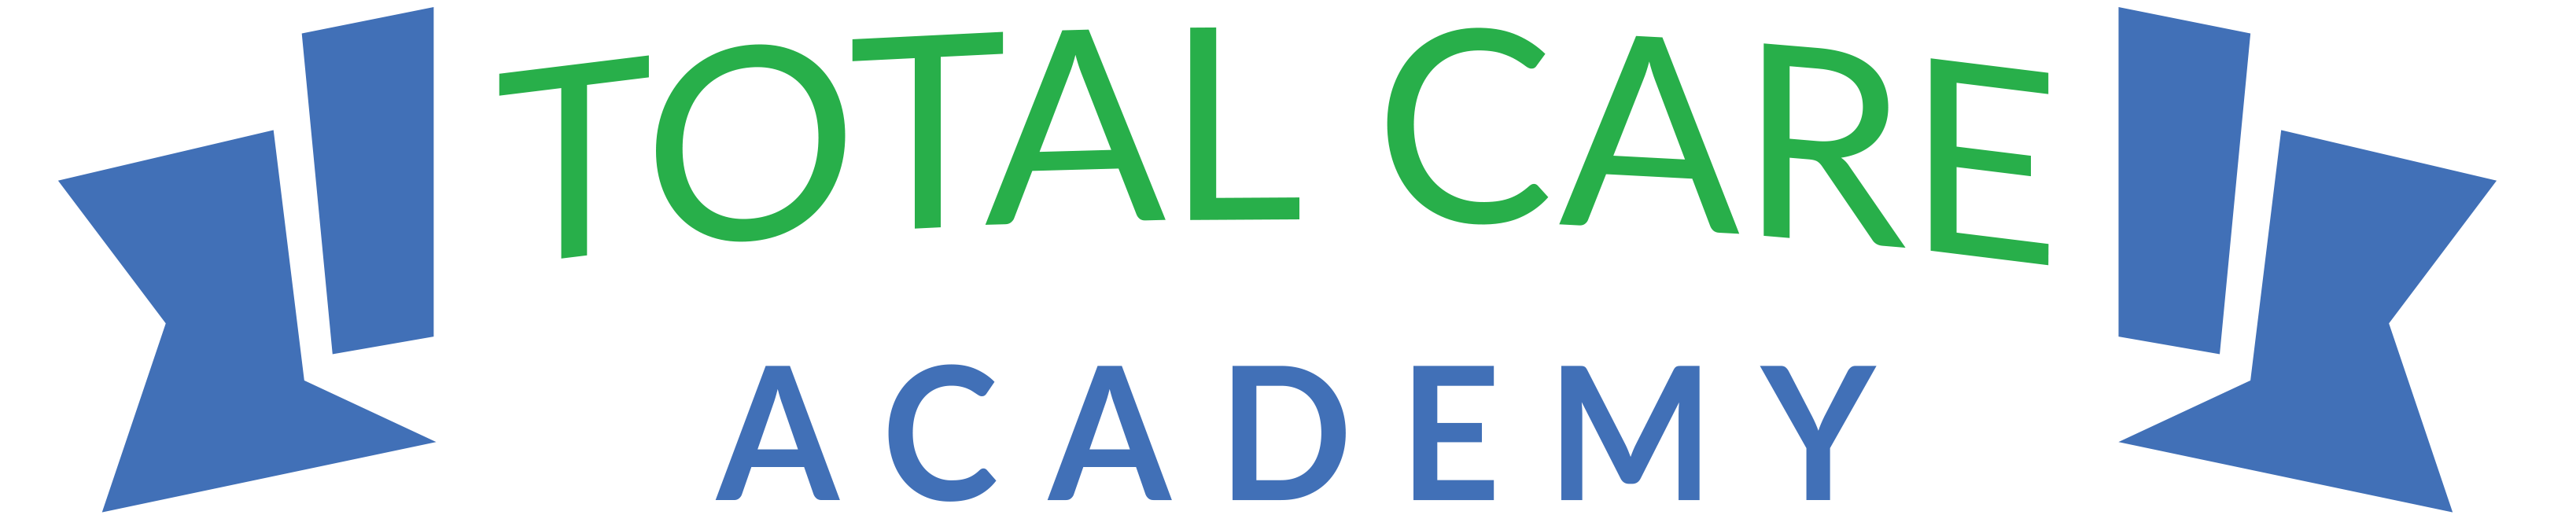 Total Care Academy Logo